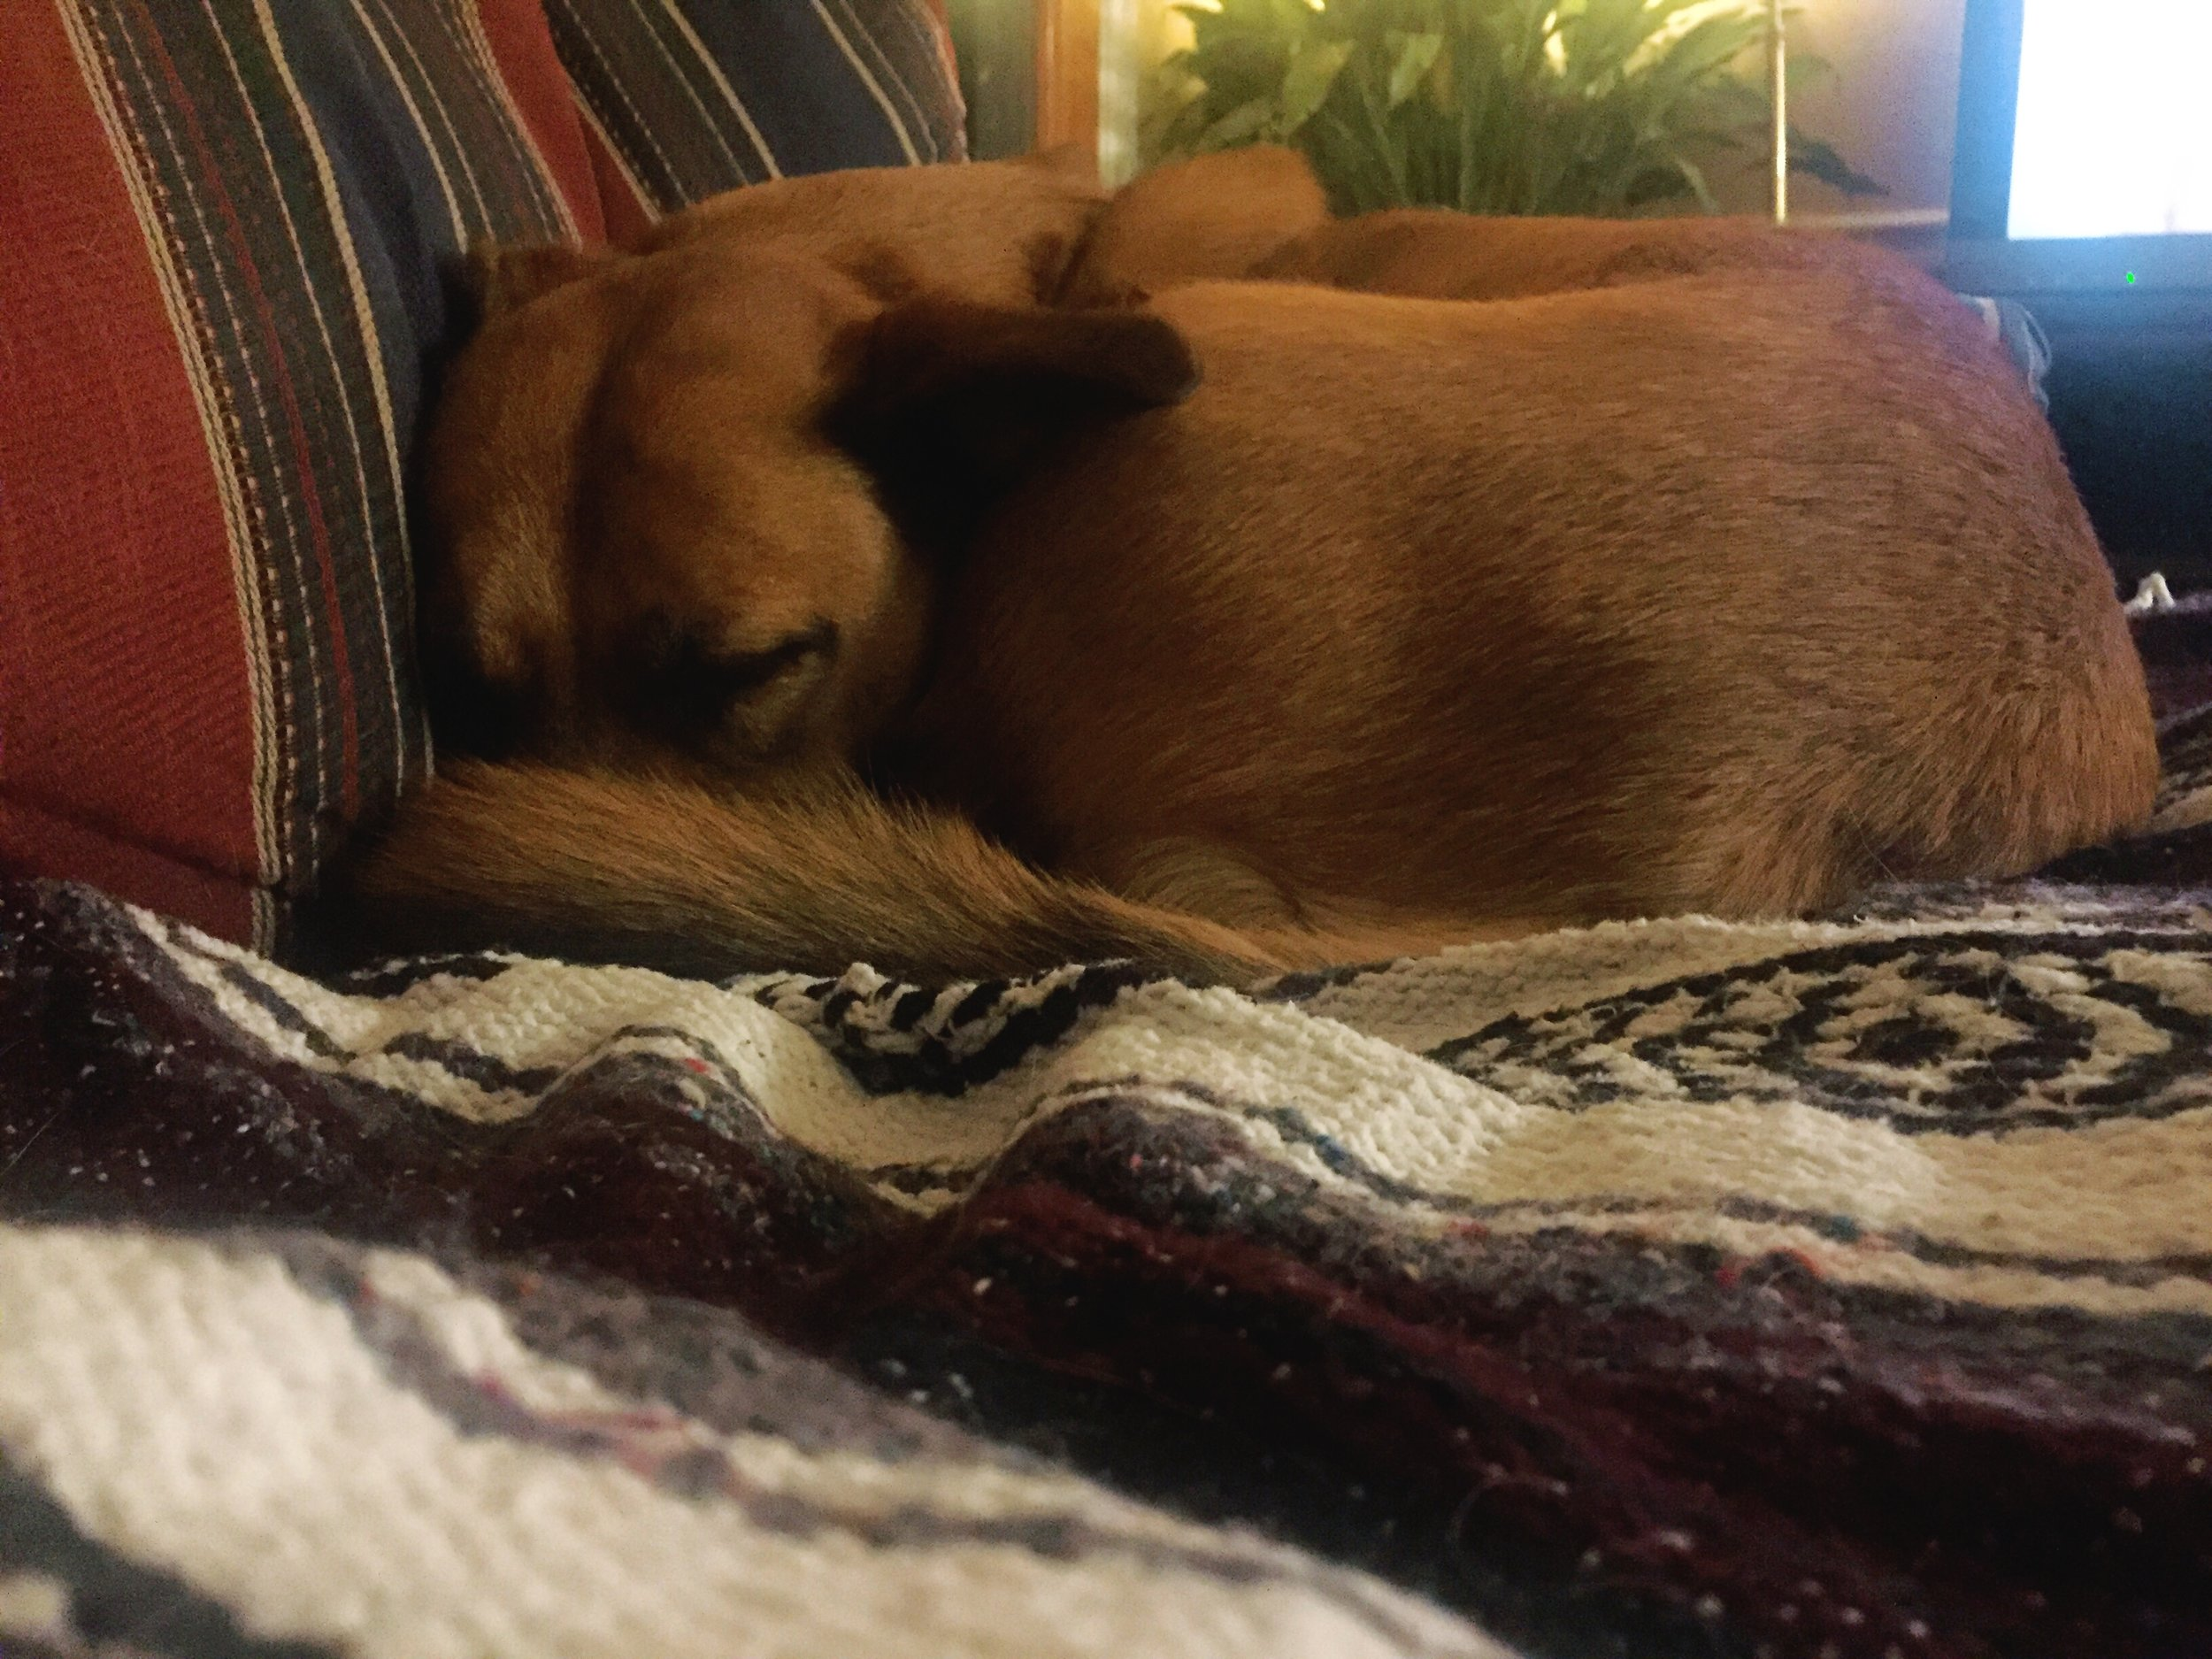 A week ago today, I was recovering from my hometown vacation. I was camped in front of the TV nursing a cold and decompressing after a packed week of reunions and merriment. This is my parent's dog doing the same, snuggling to keep warm, which is fitting to share tonight before the 'bomb cyclone' of 2018